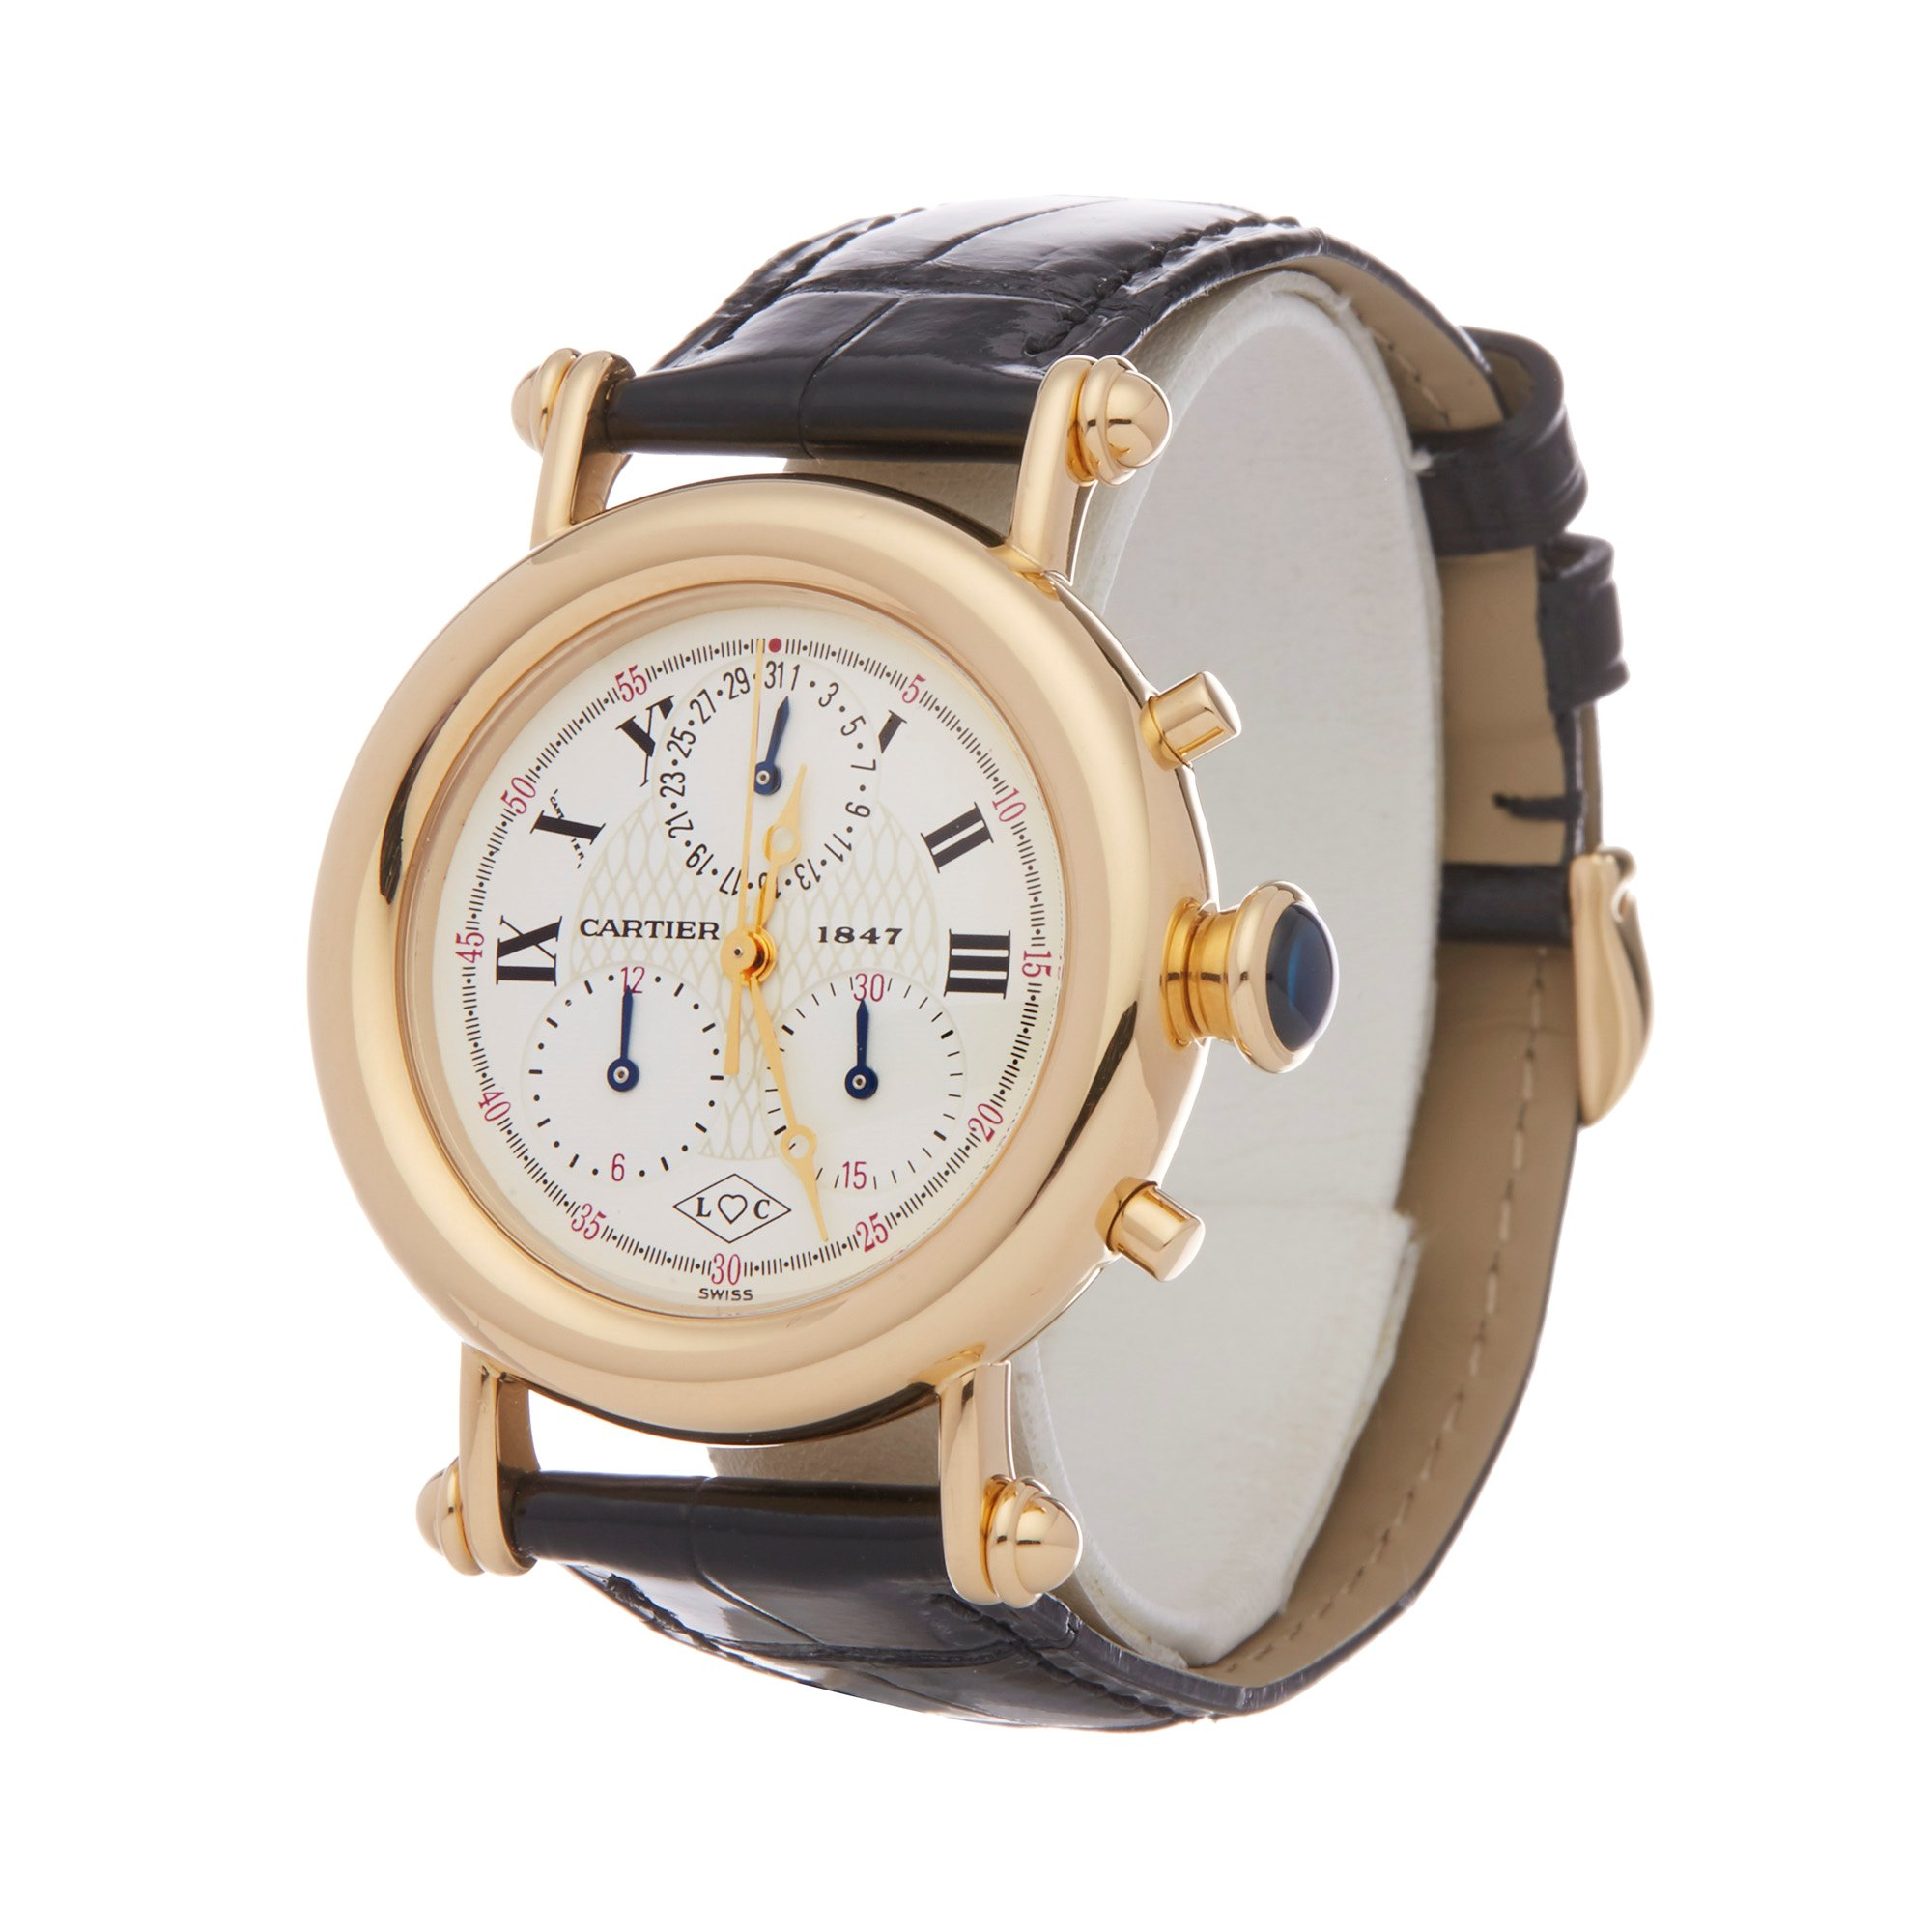 Cartier Diabolo Anniversary Chronograph 18K Yellow Gold 1400